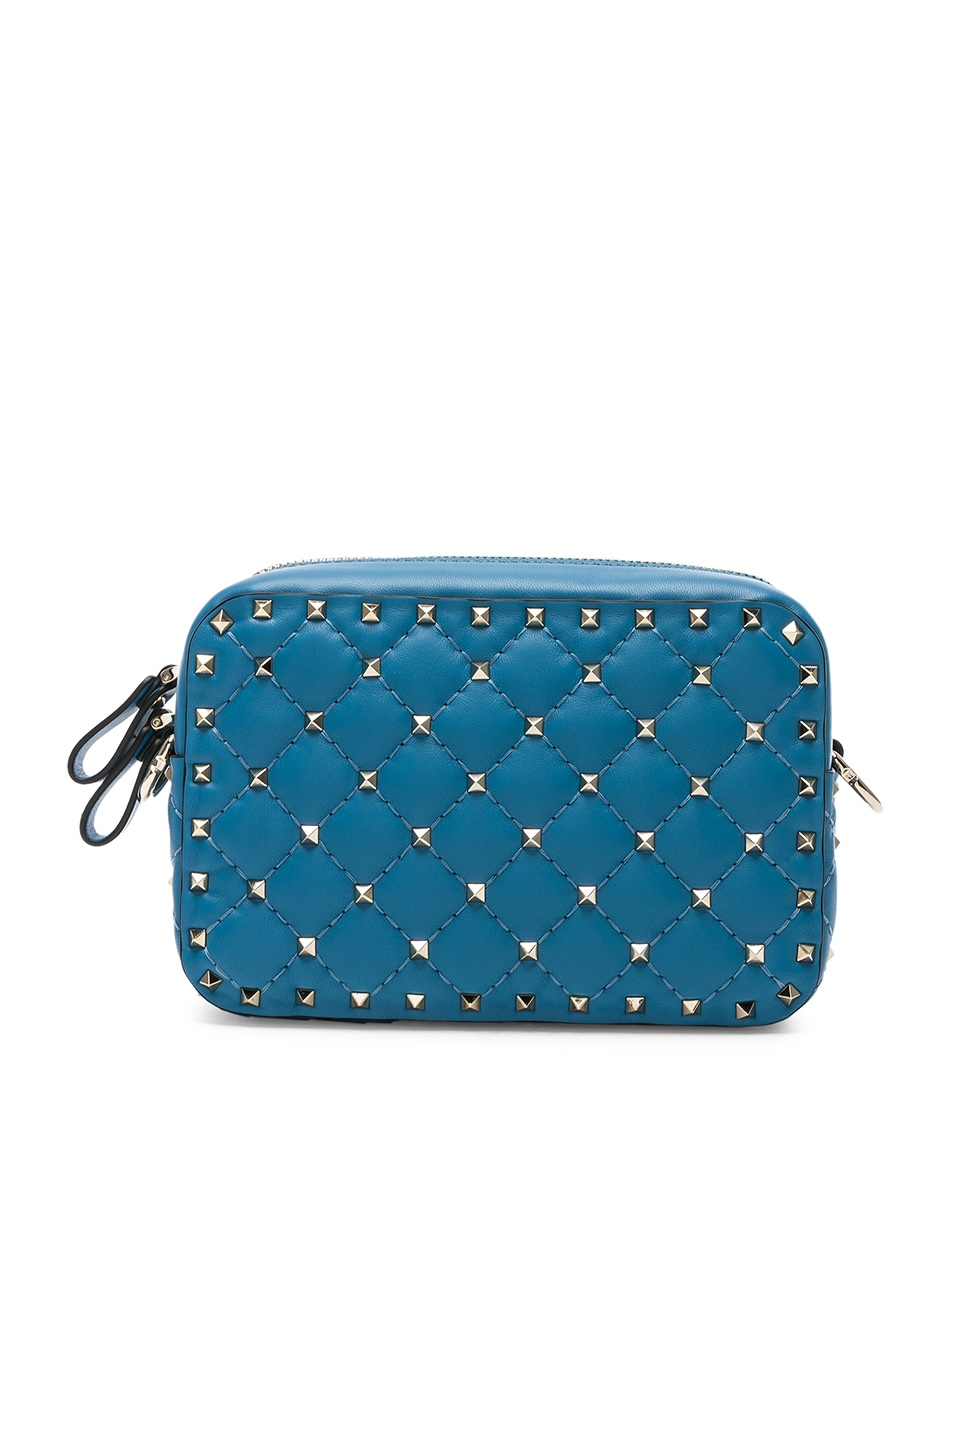 Image 3 of Valentino Rockstud Spike Crossbody Bag in Sky Blue